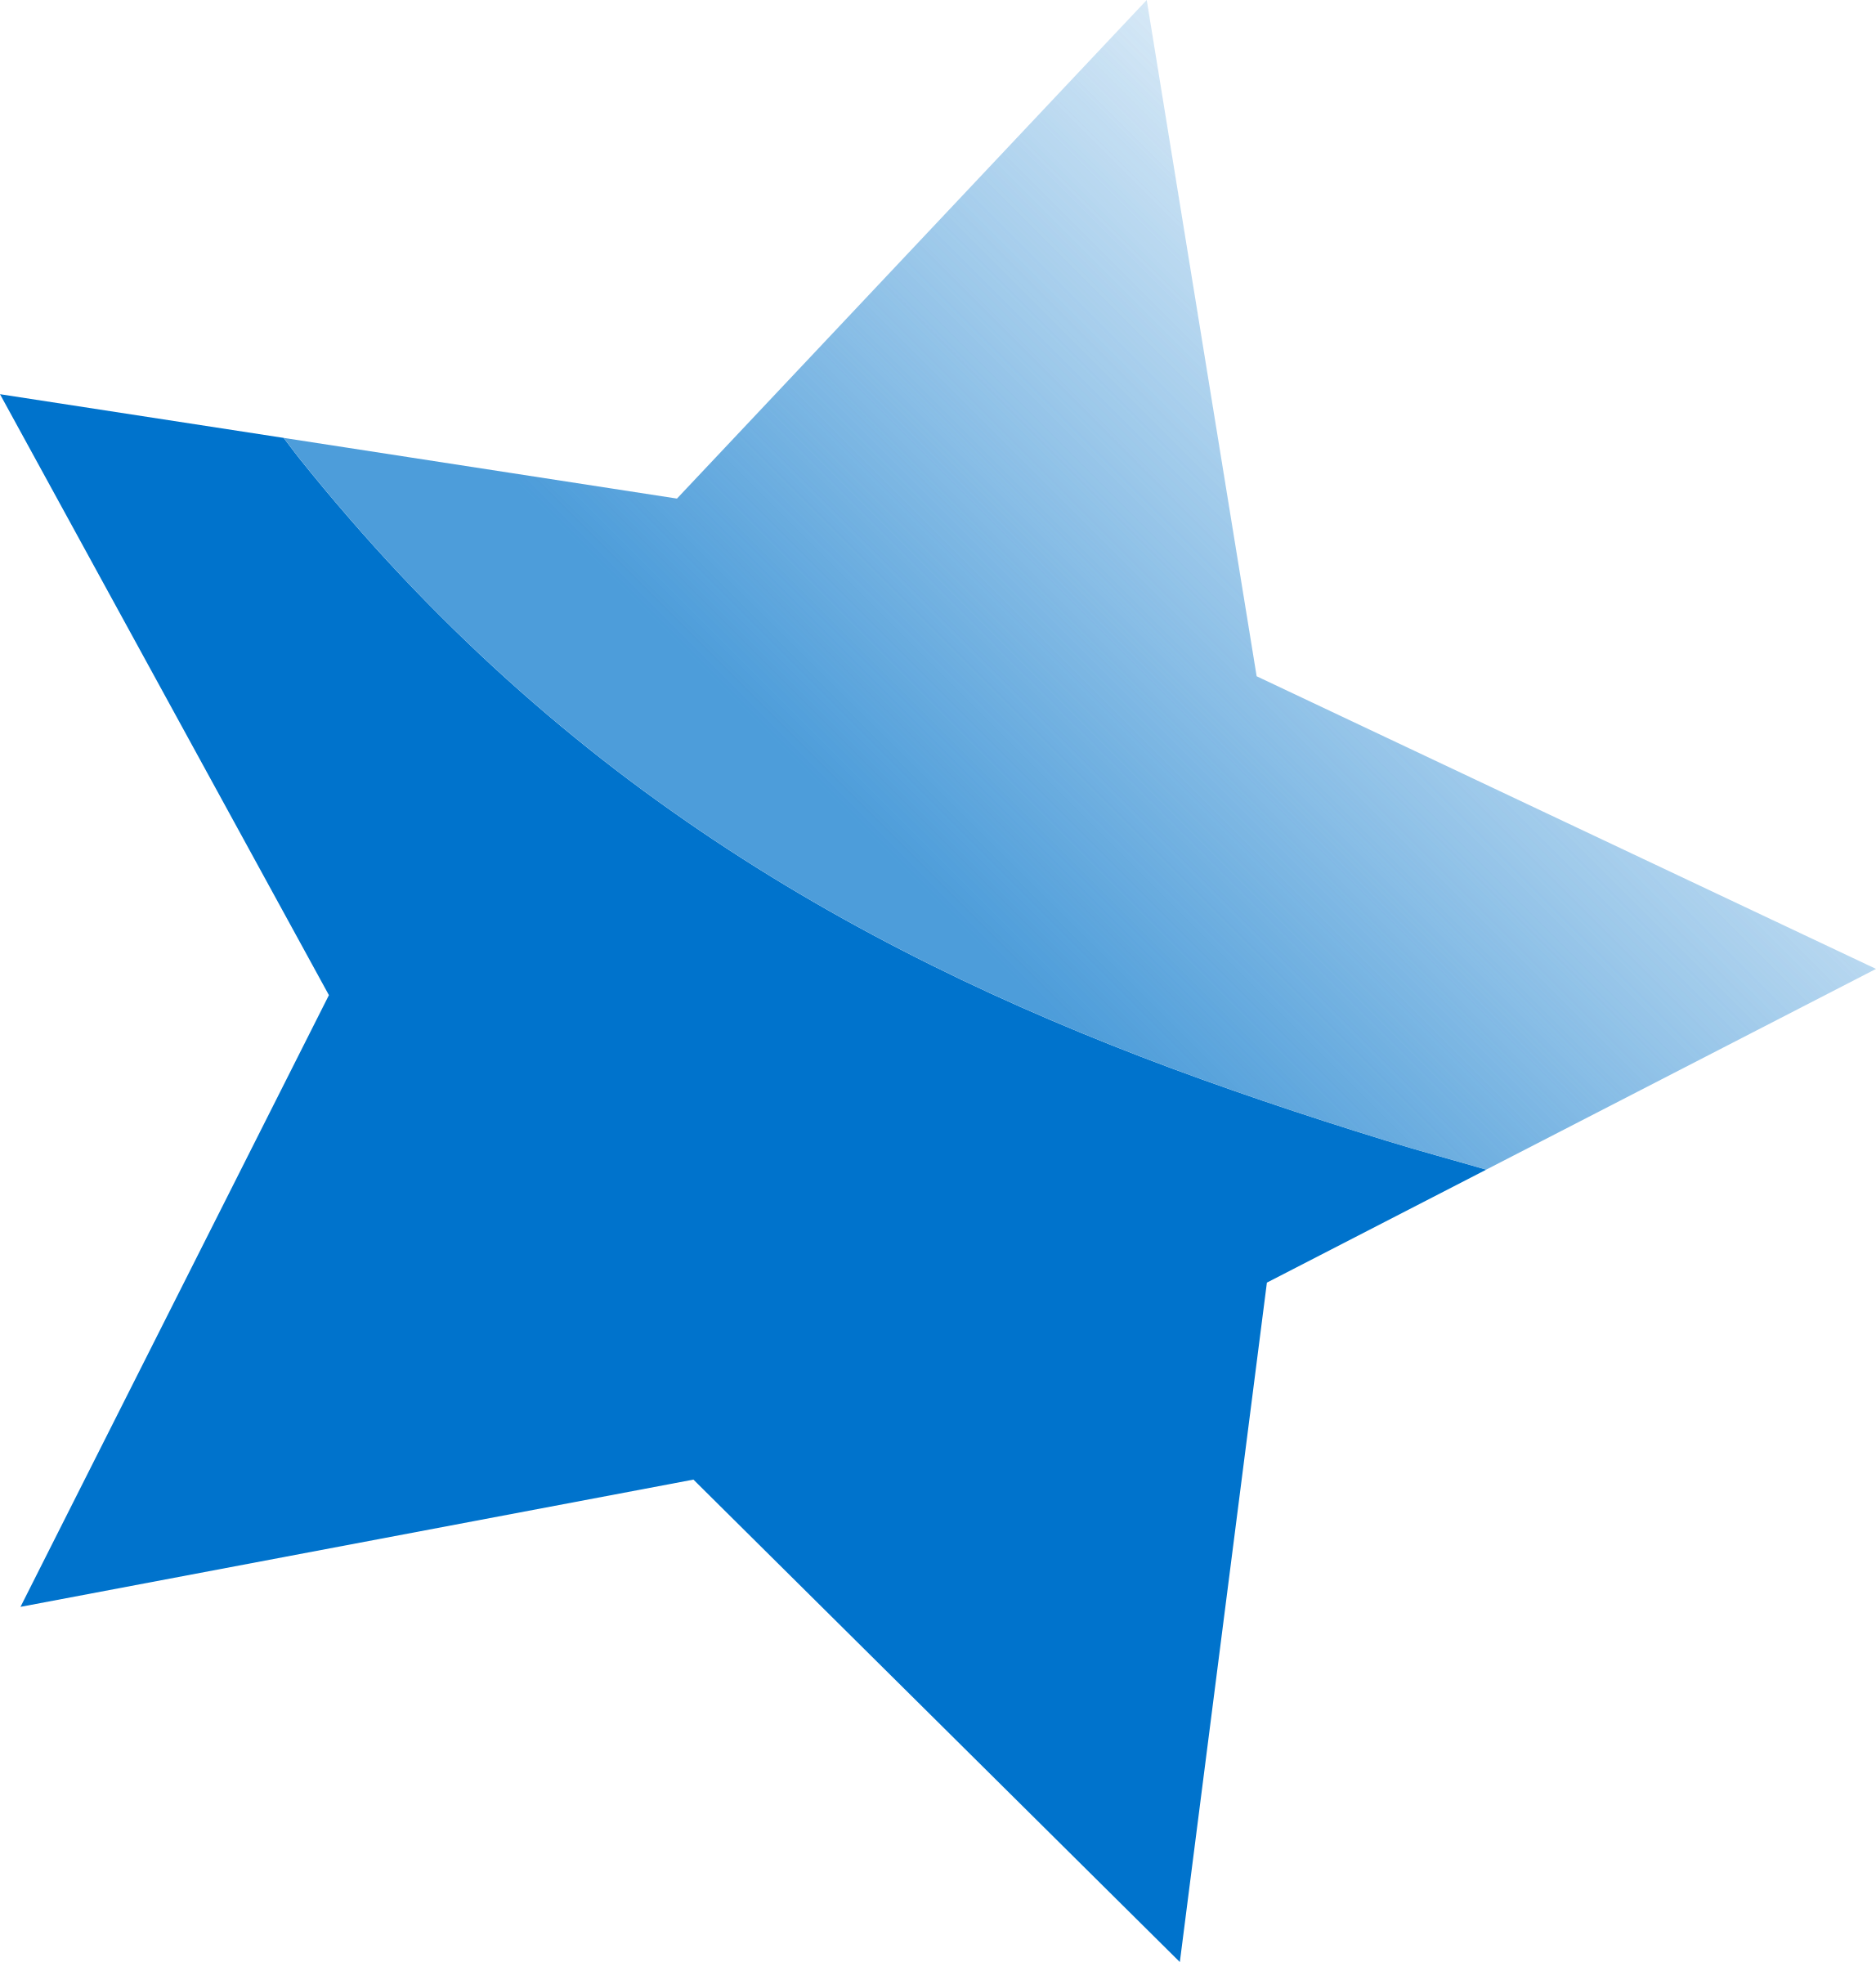 Clipart blue star graphic free library Clipart - Blue Star graphic free library